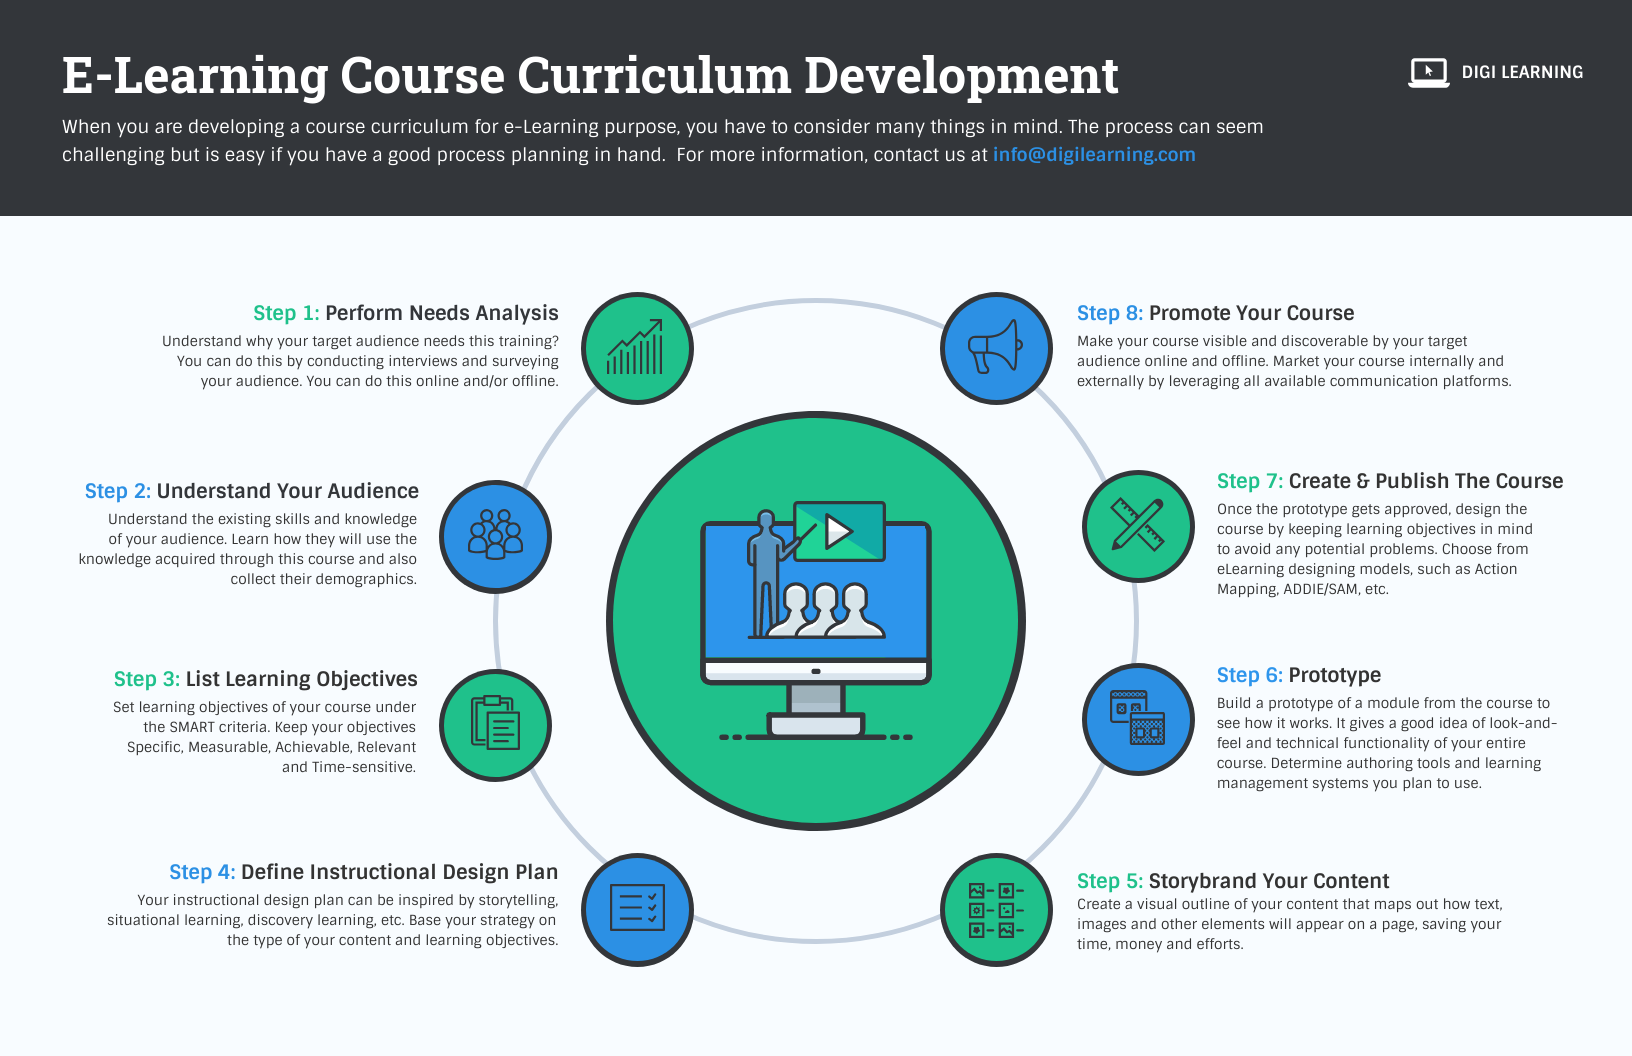 E Learning Course Curriculum Development Process Infographic Template